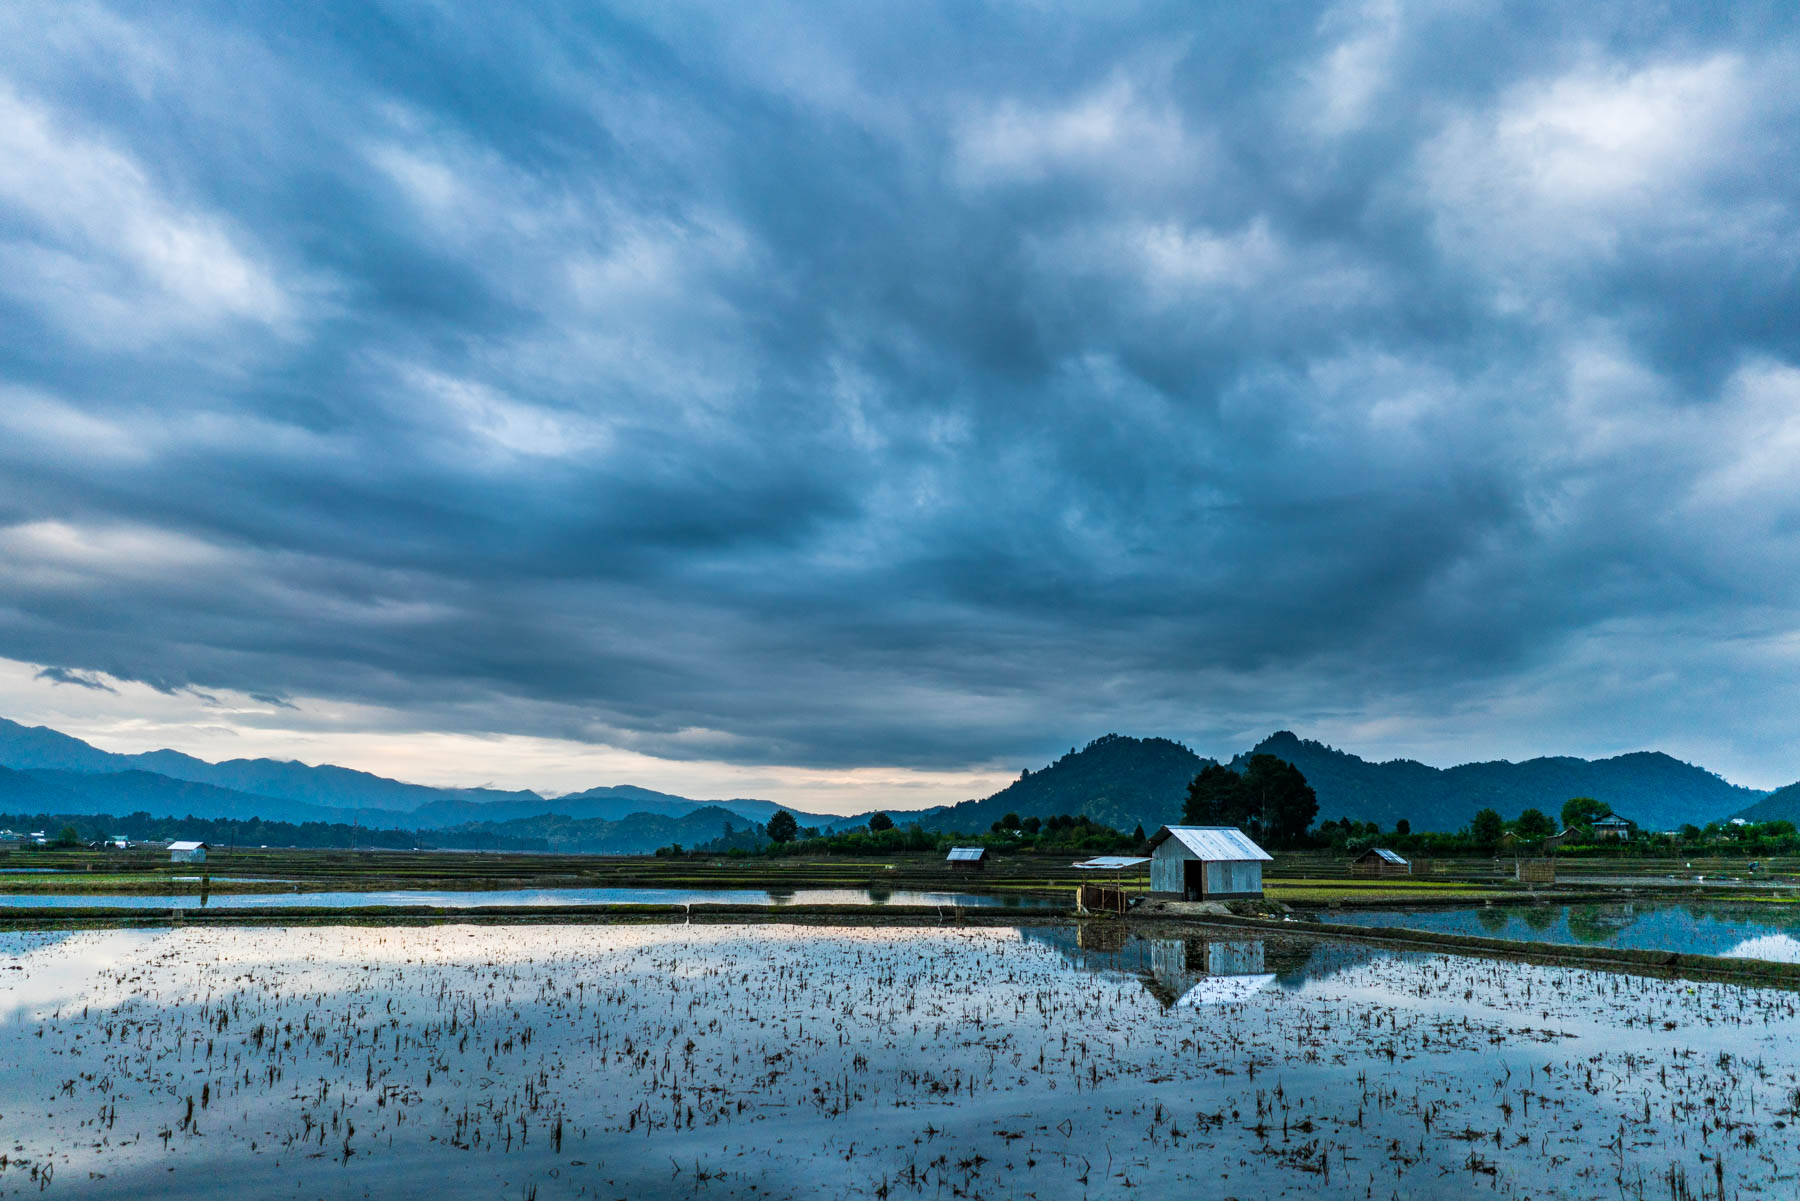 Backpacking in Arunachal Pradesh travel guide - Epic clouds reflecting over rice paddy waters in Ziro Valley - Lost With Purpose